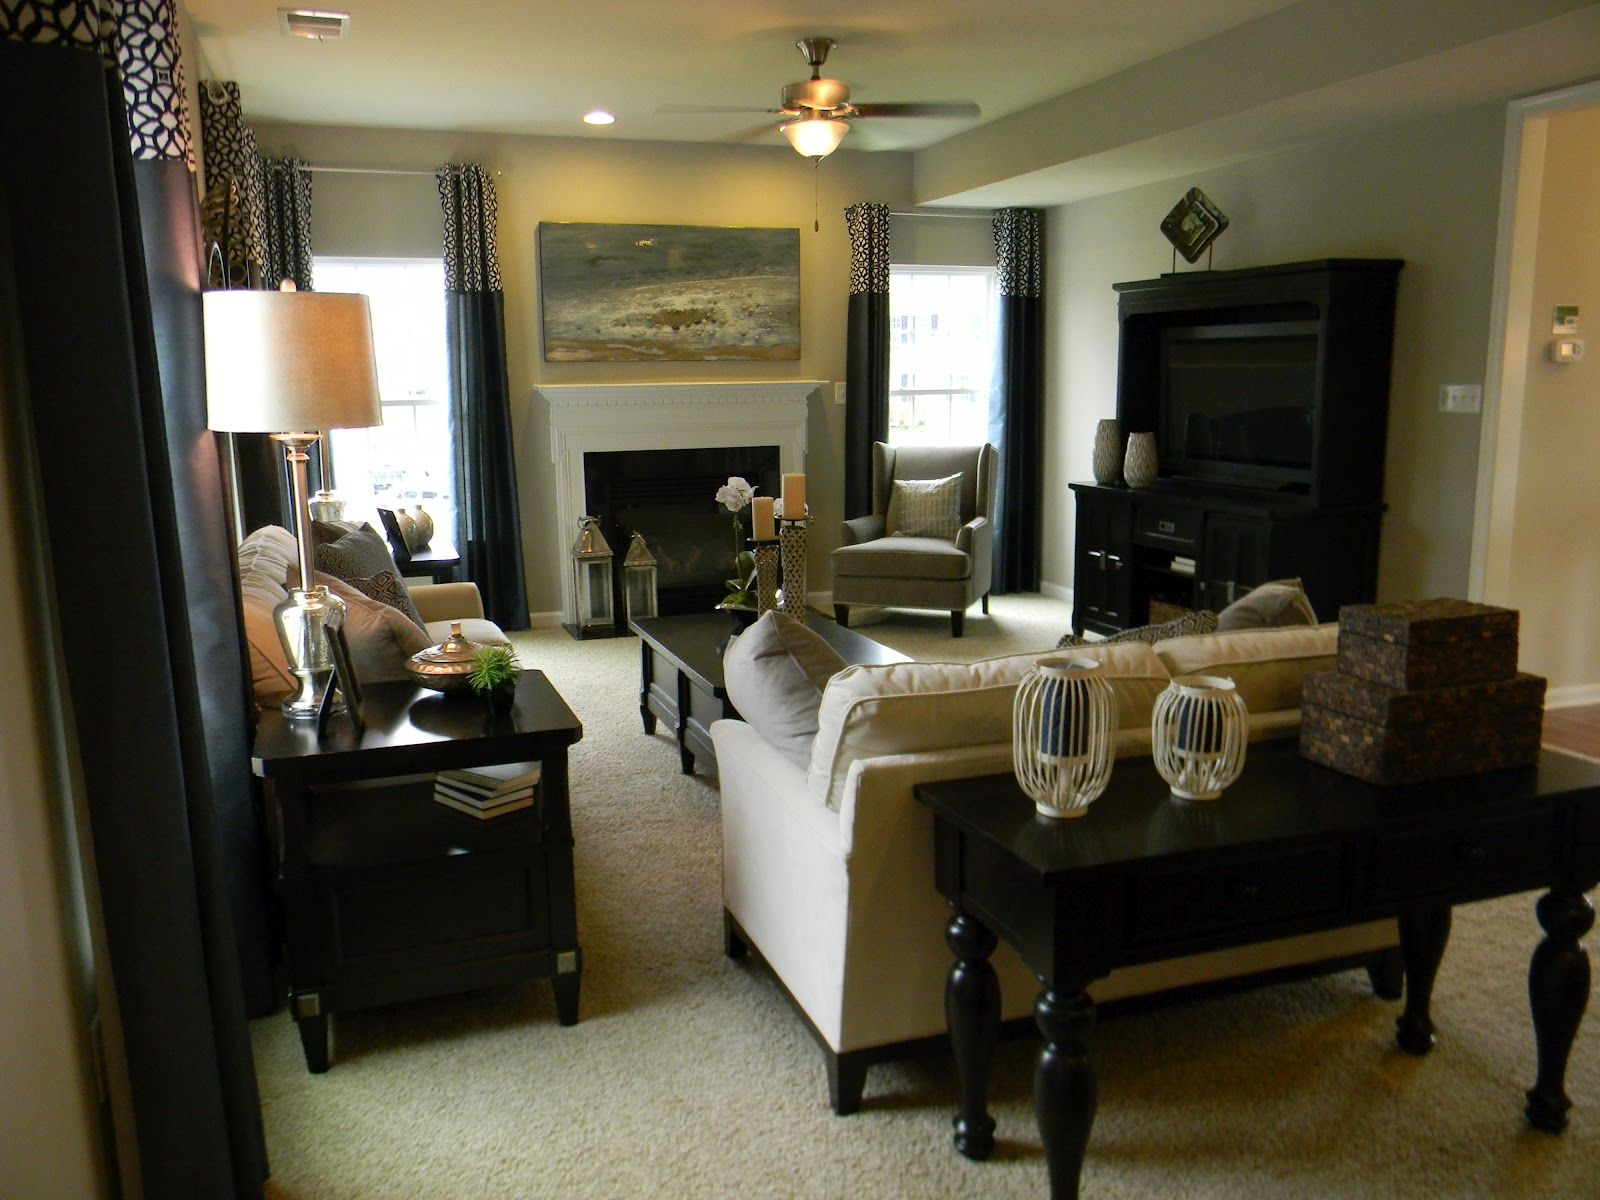 Model Home Curtains living room setup. split level furniture placement with fireplace